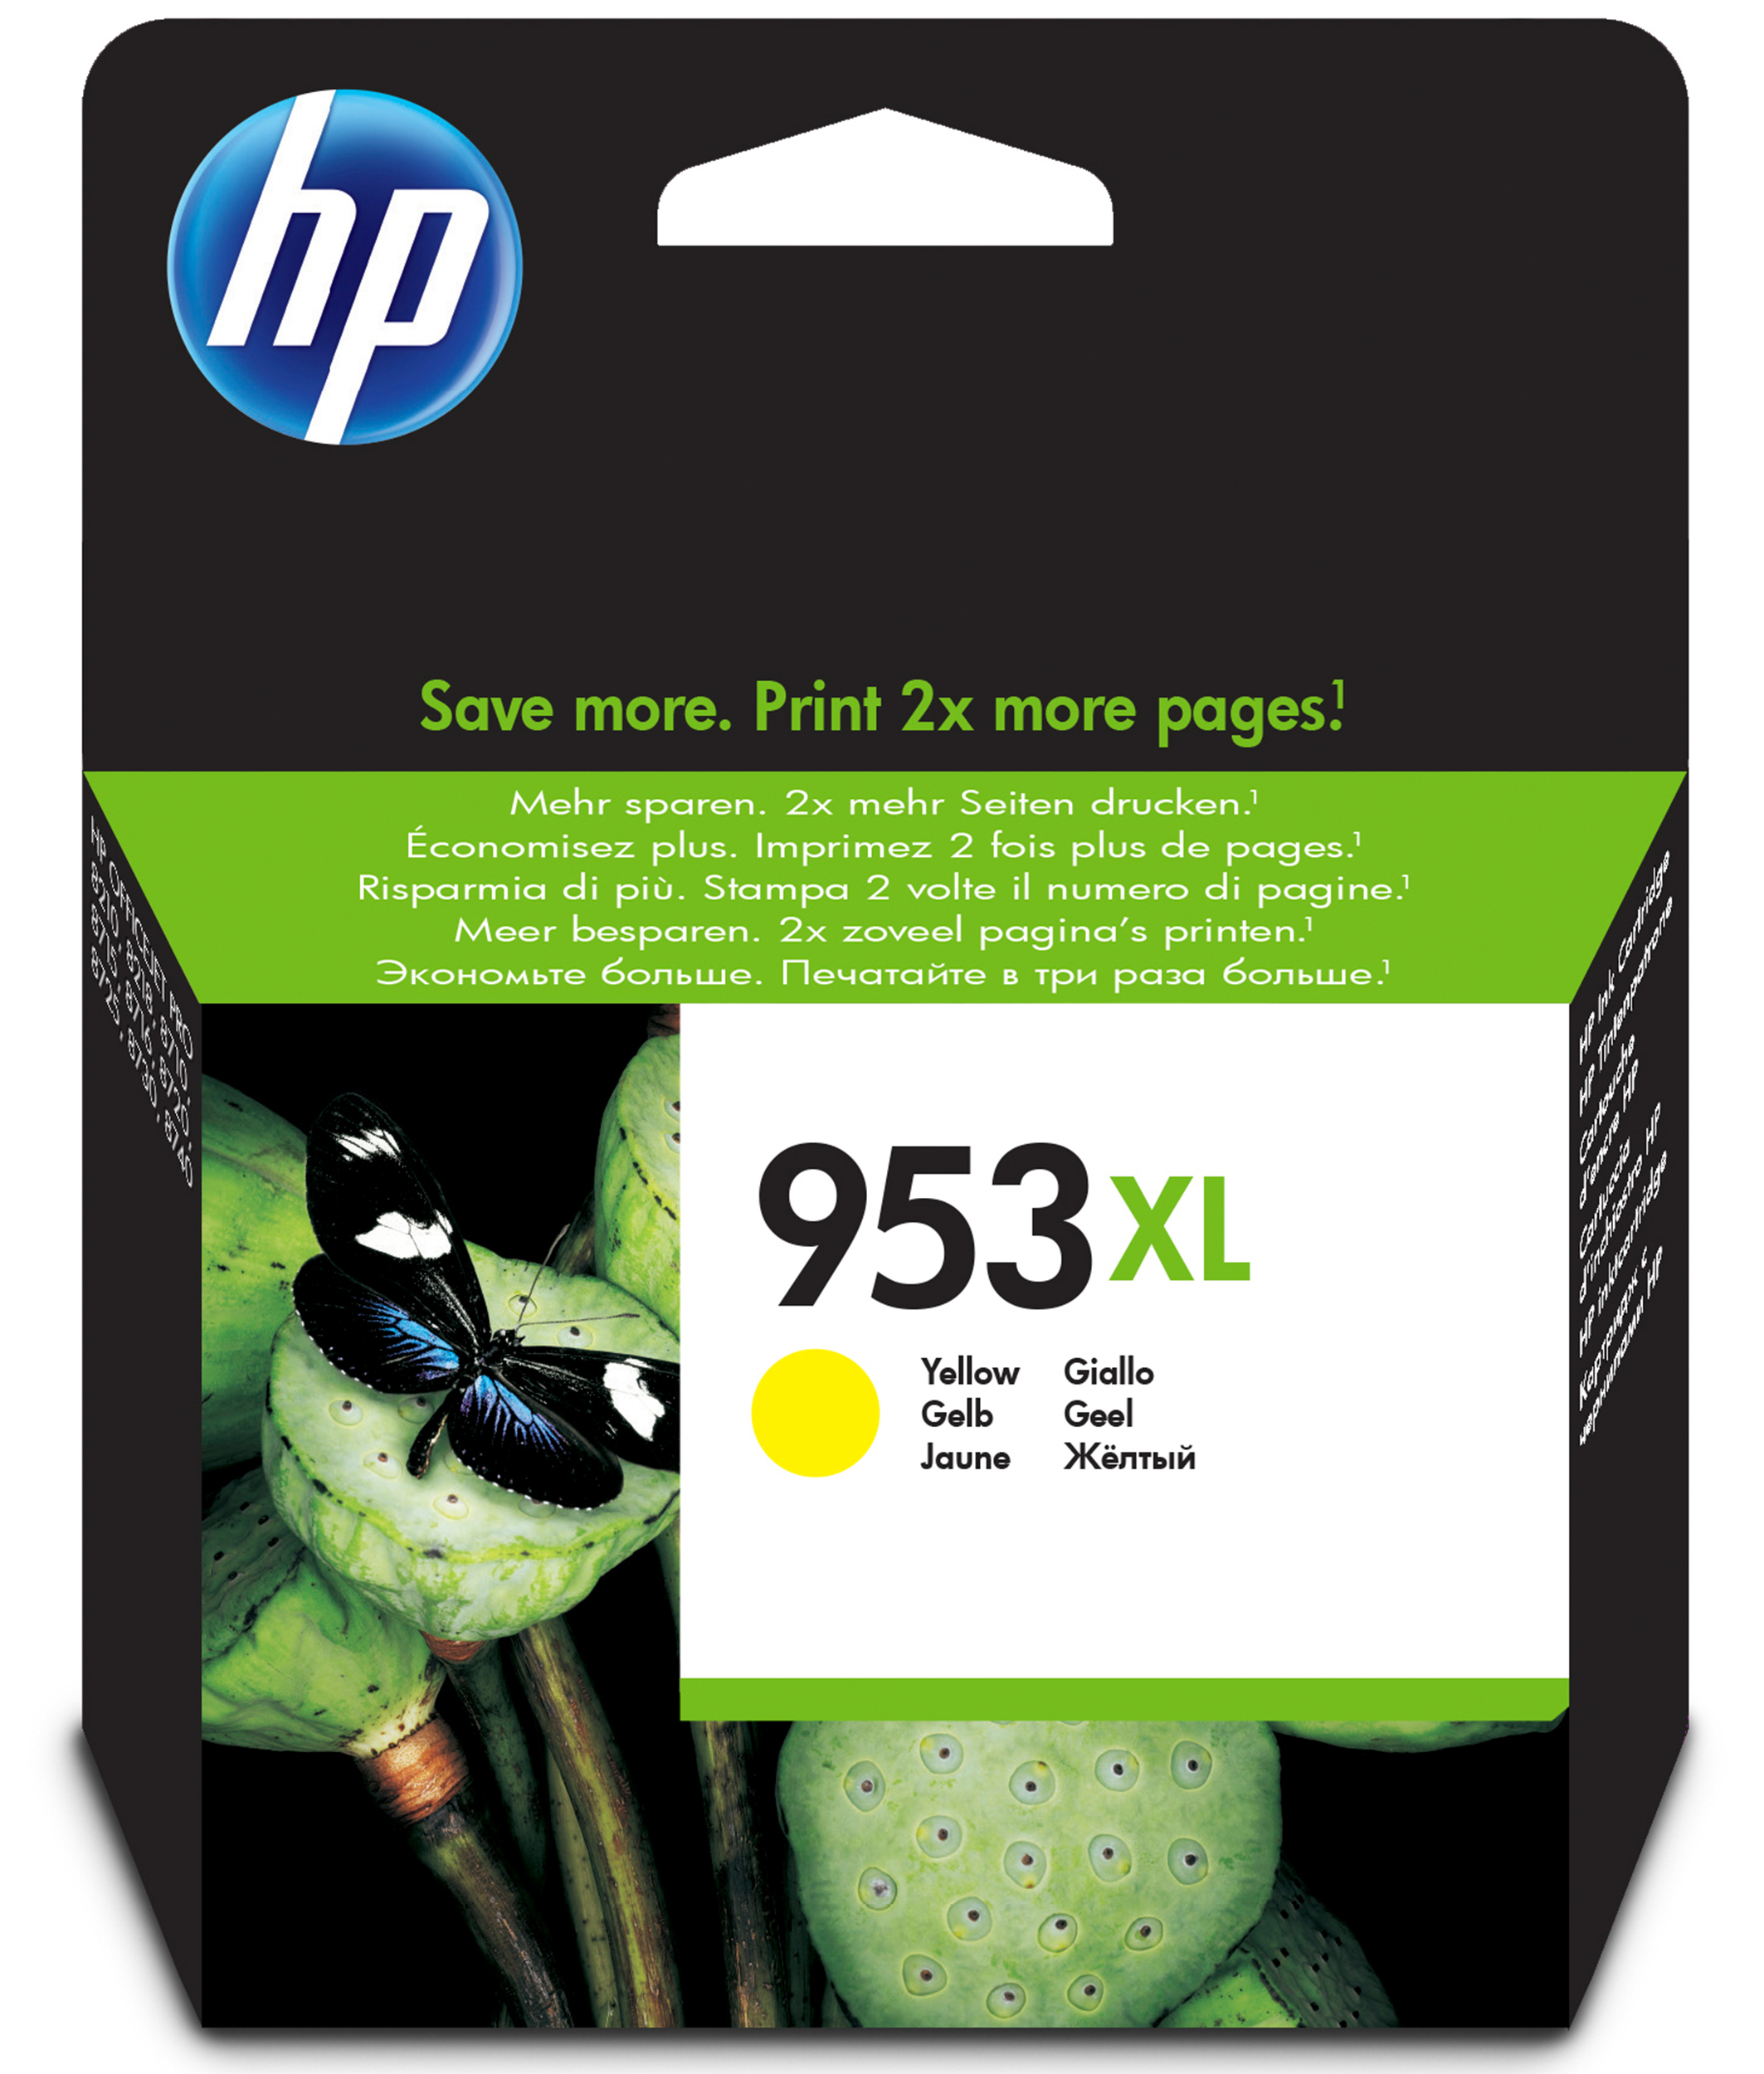 HP 953XL - 20 Ml - High Yield - Yellow - Original - Ink Cartridge - For Officejet Pro 8218, 8710, 8715, 8720, 8725, 8730, 8740, 8745 F6U18AE#BGX - C2000